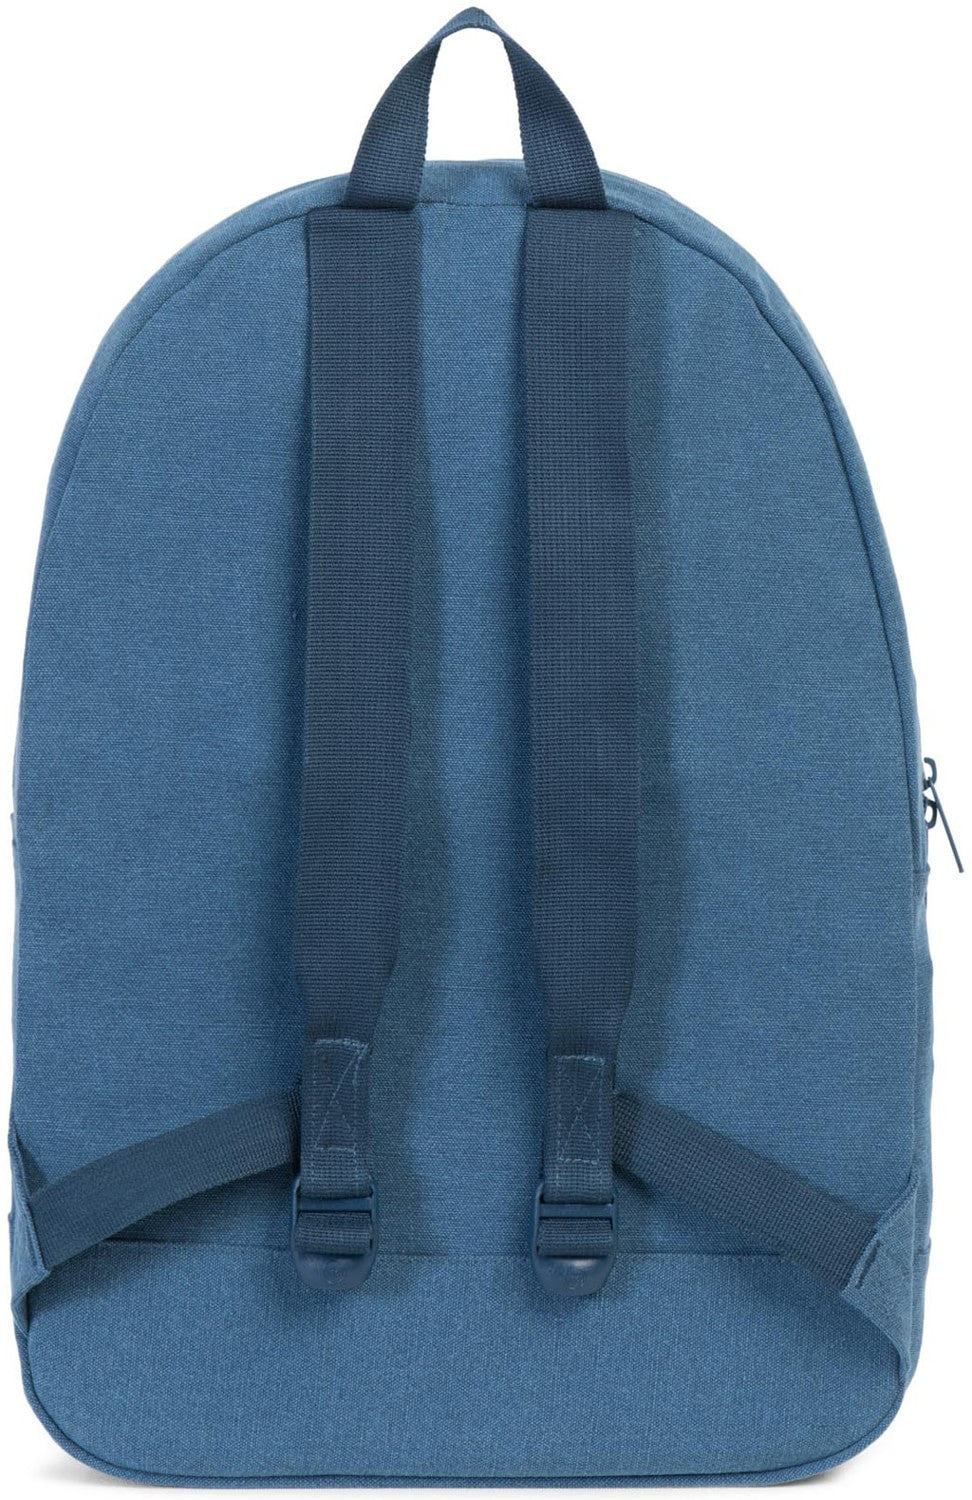 Herschel Supply Co. - Packable Daypack, Navy Canvas - The Giant Peach - 4